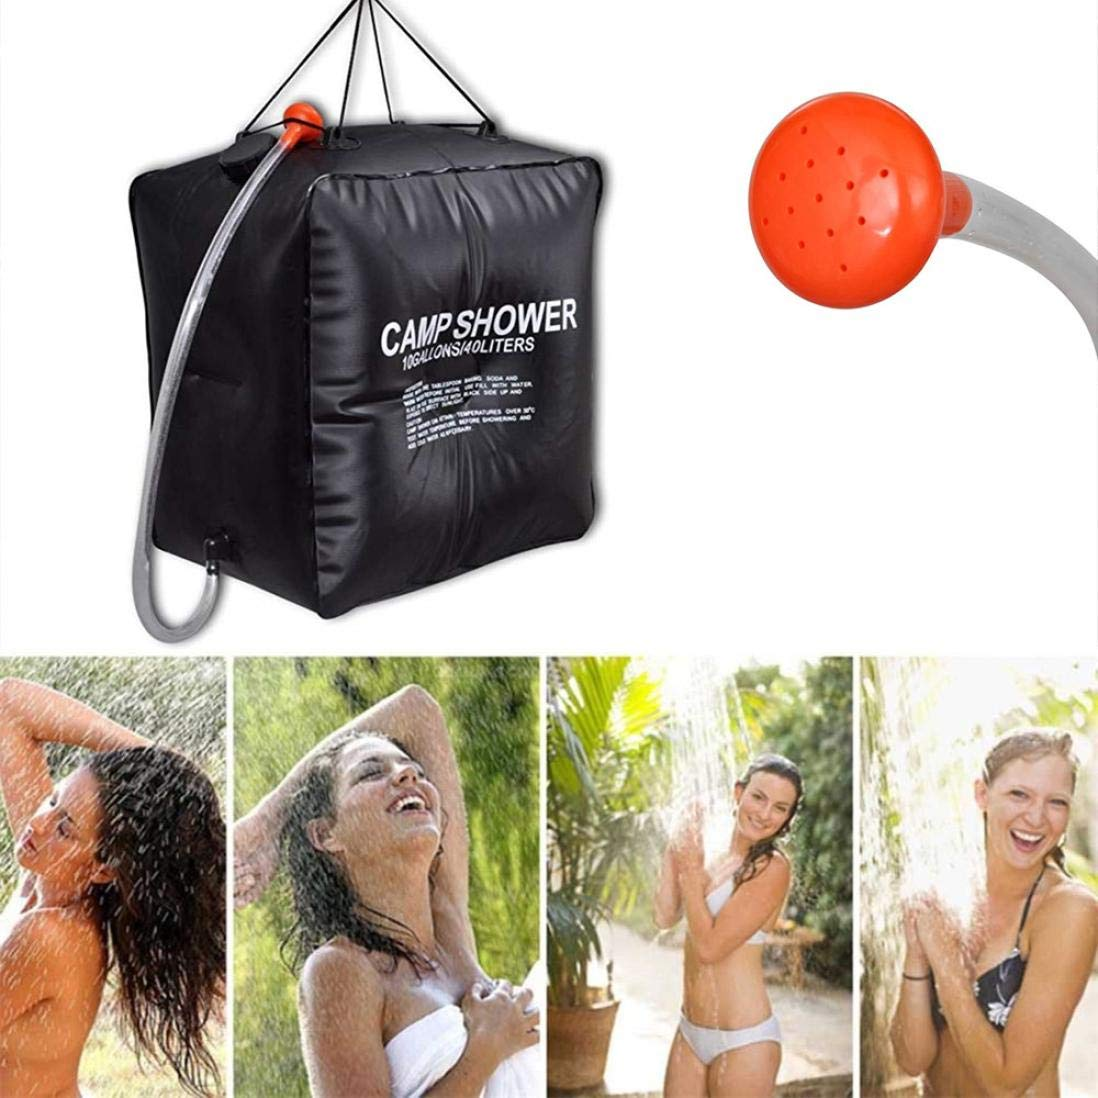 Feccile Sports & Outdoor Supplies,10 gallons/ 40L Portable Solar Heating Premium Camping Shower Bag with Removable Hose Shower Head for Hiking Climbing Summer Shower